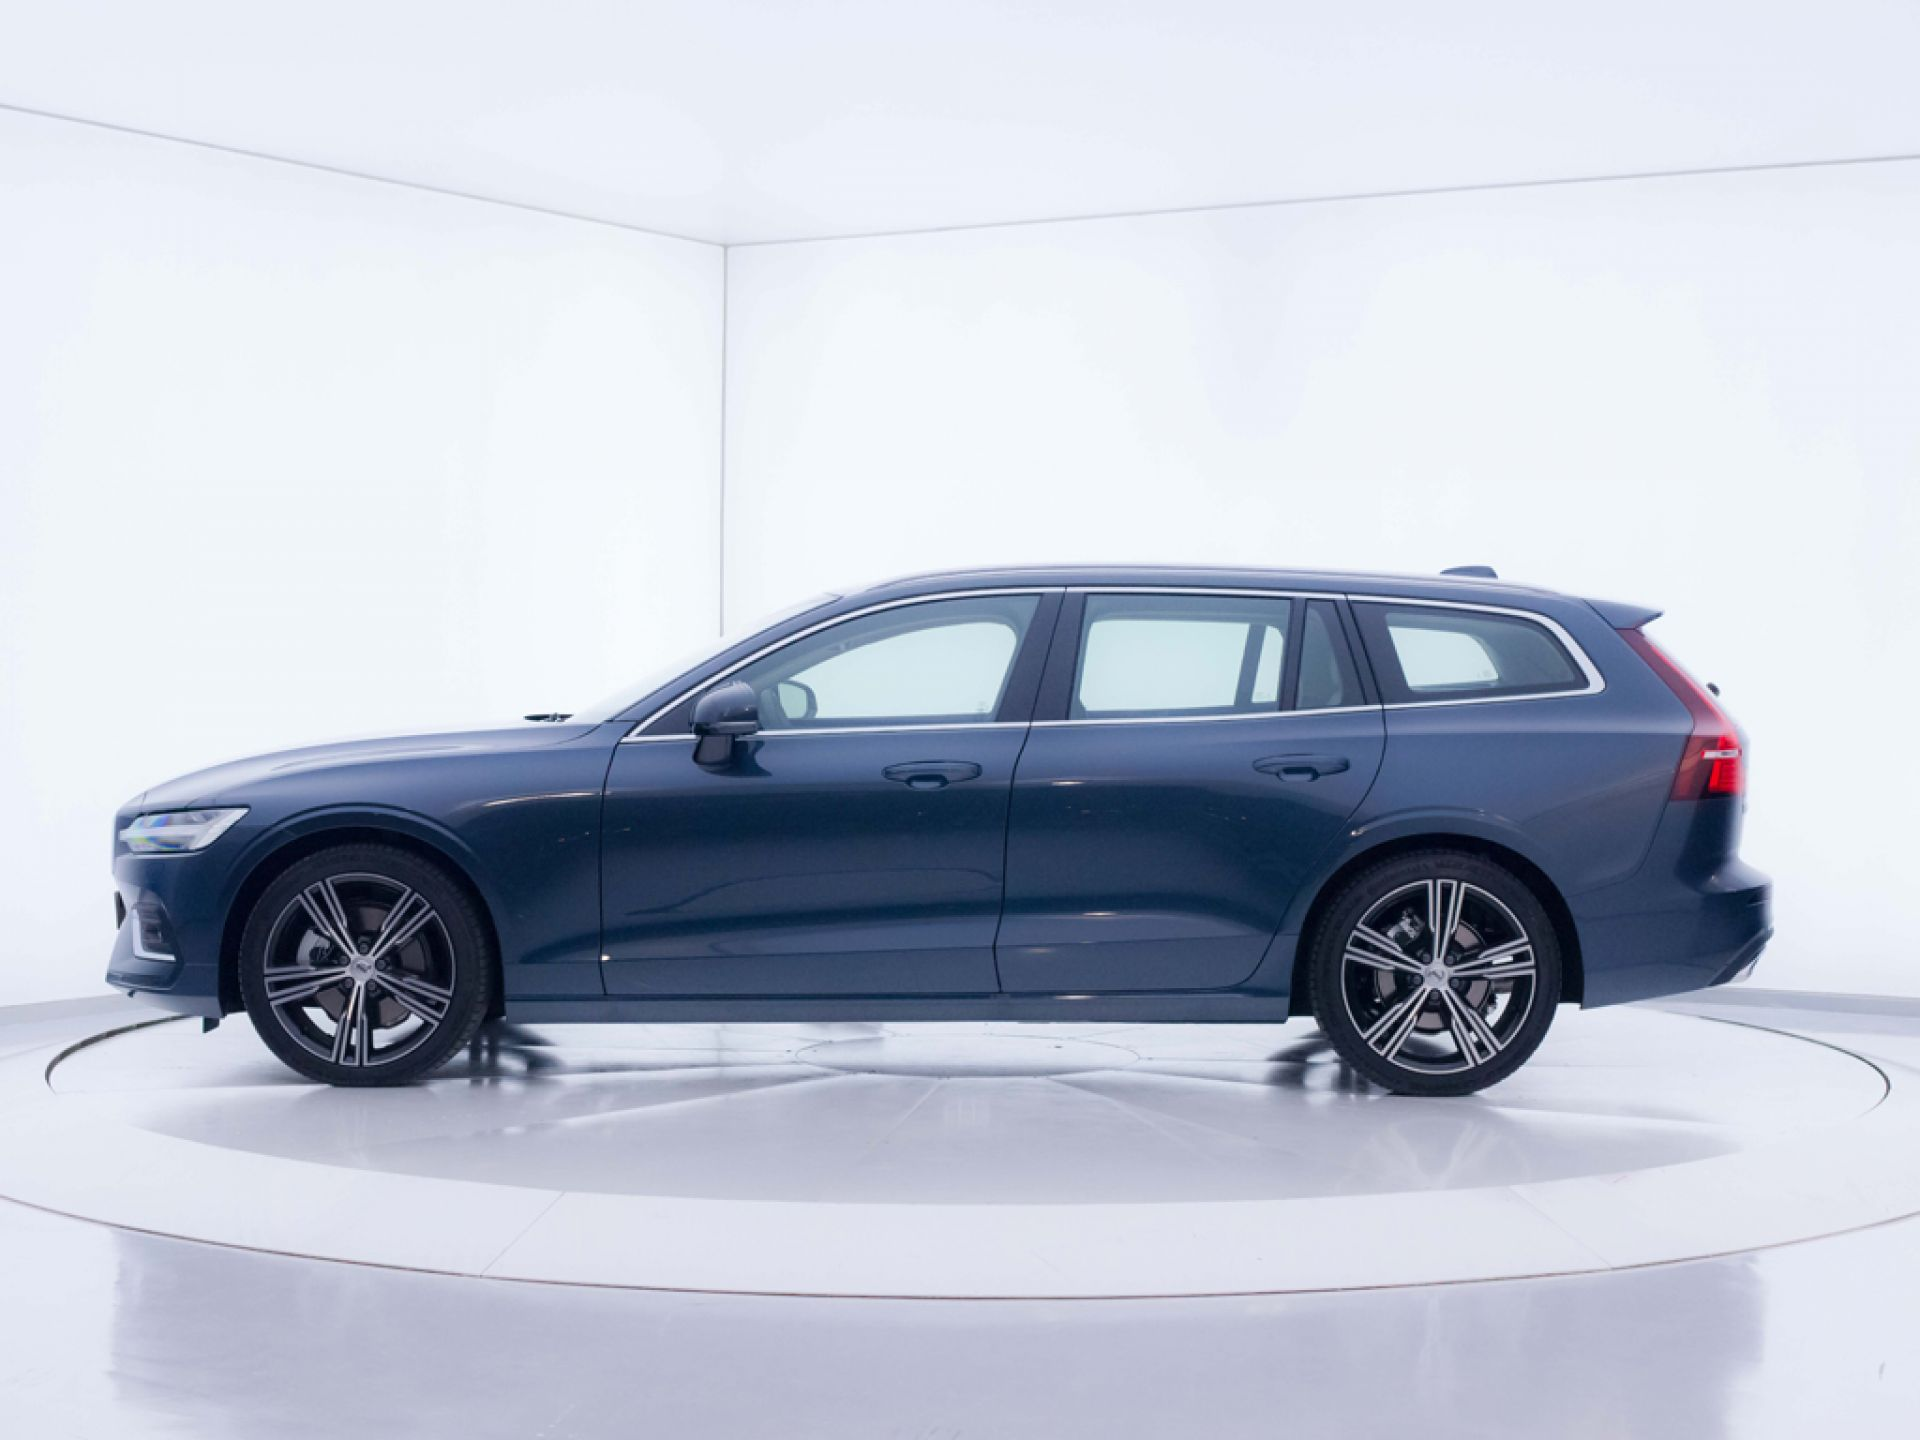 Volvo V60 2.0 D4 Inscription Auto